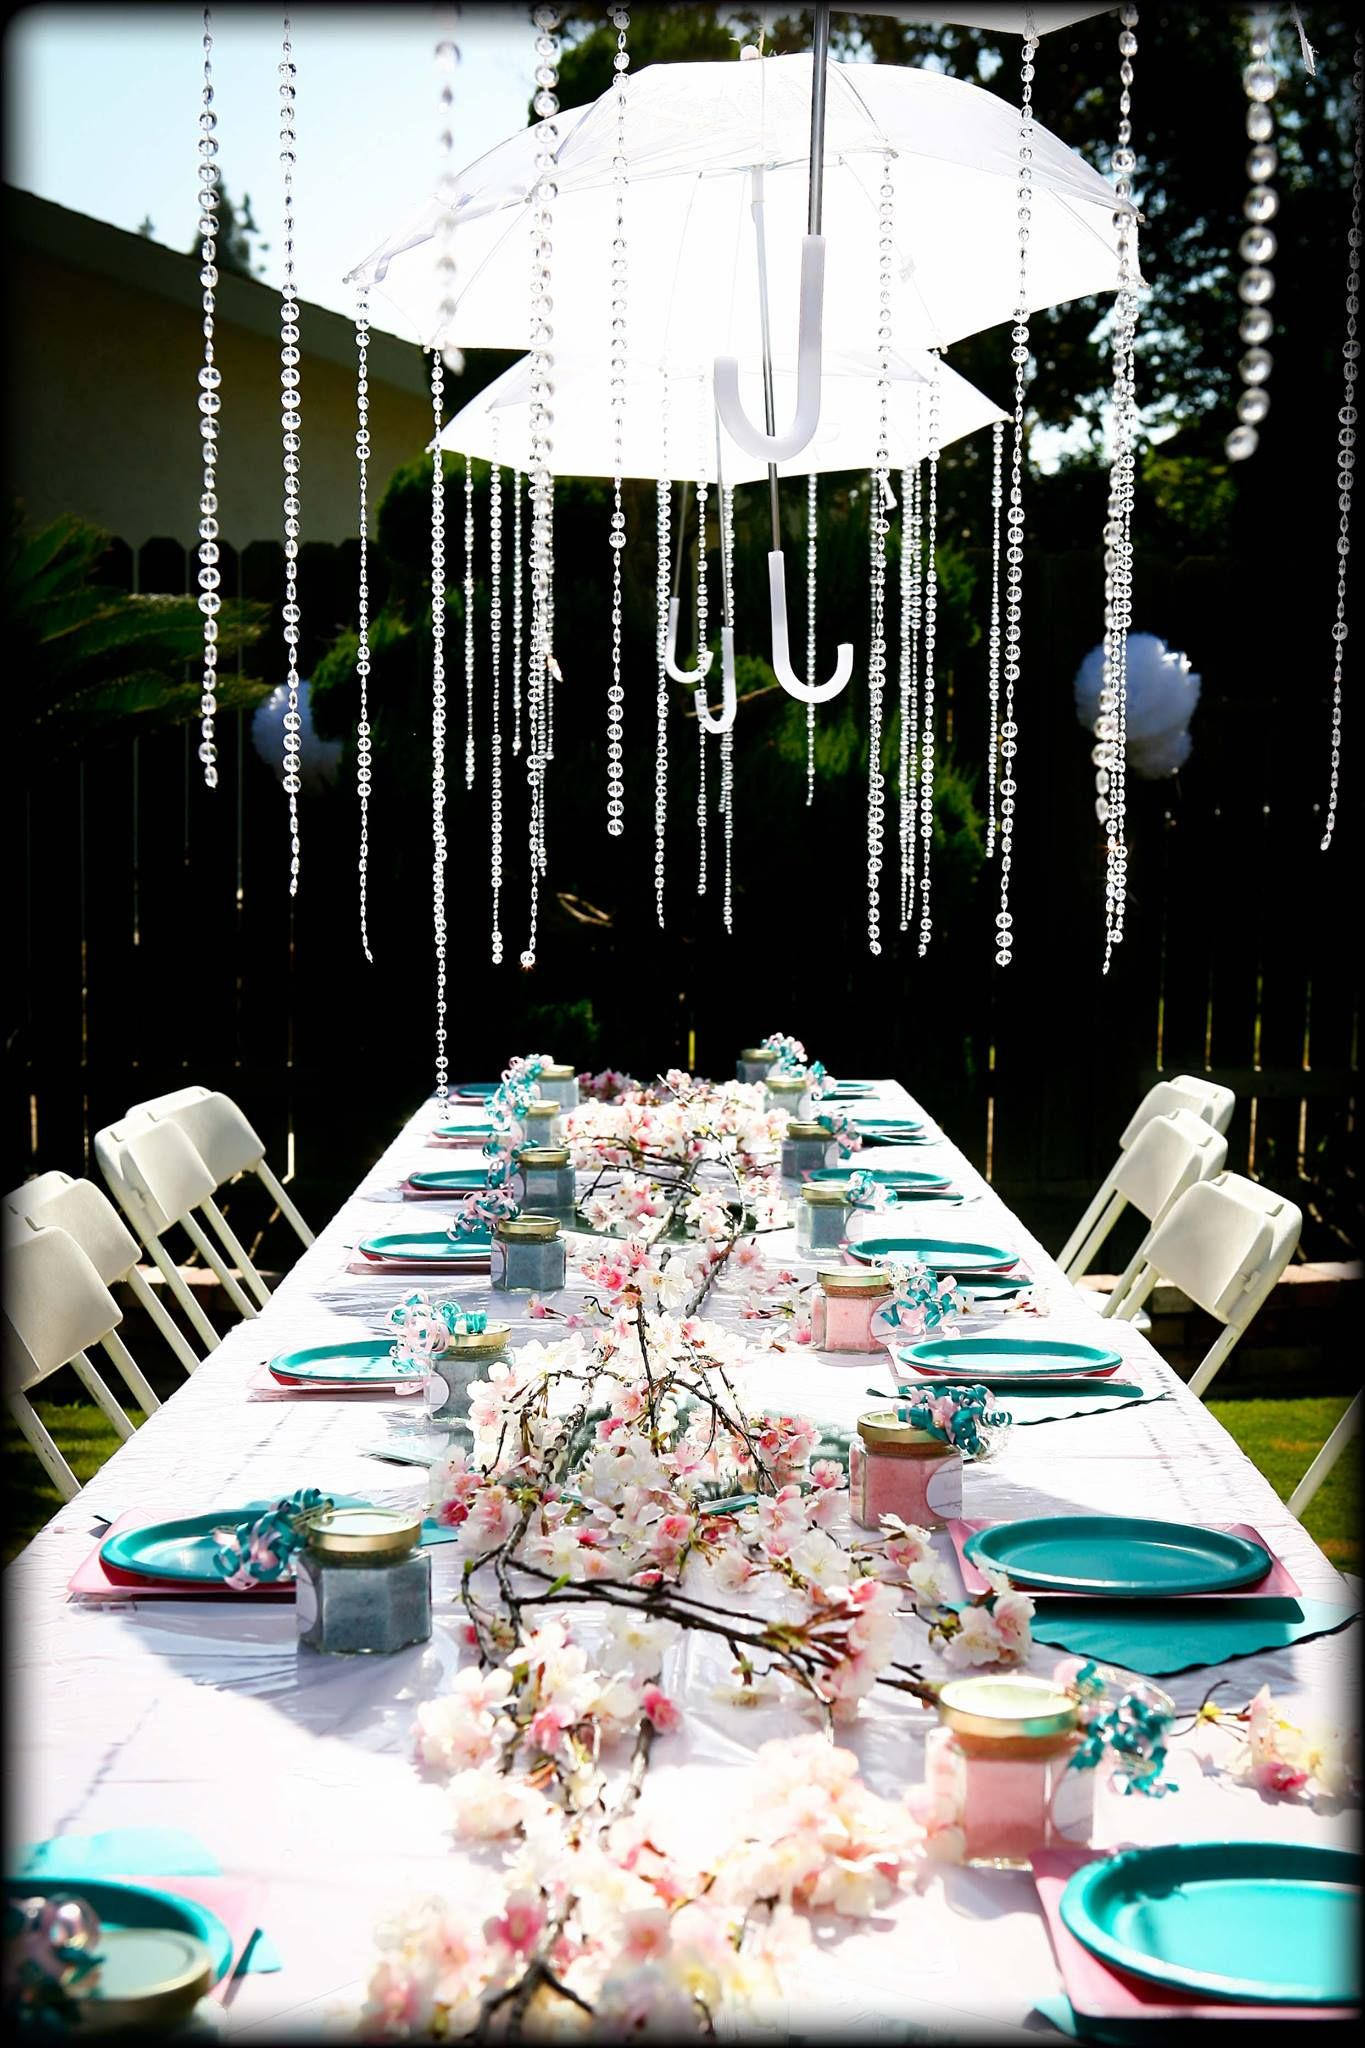 Umbrellas showering down crystals for baby shower decor